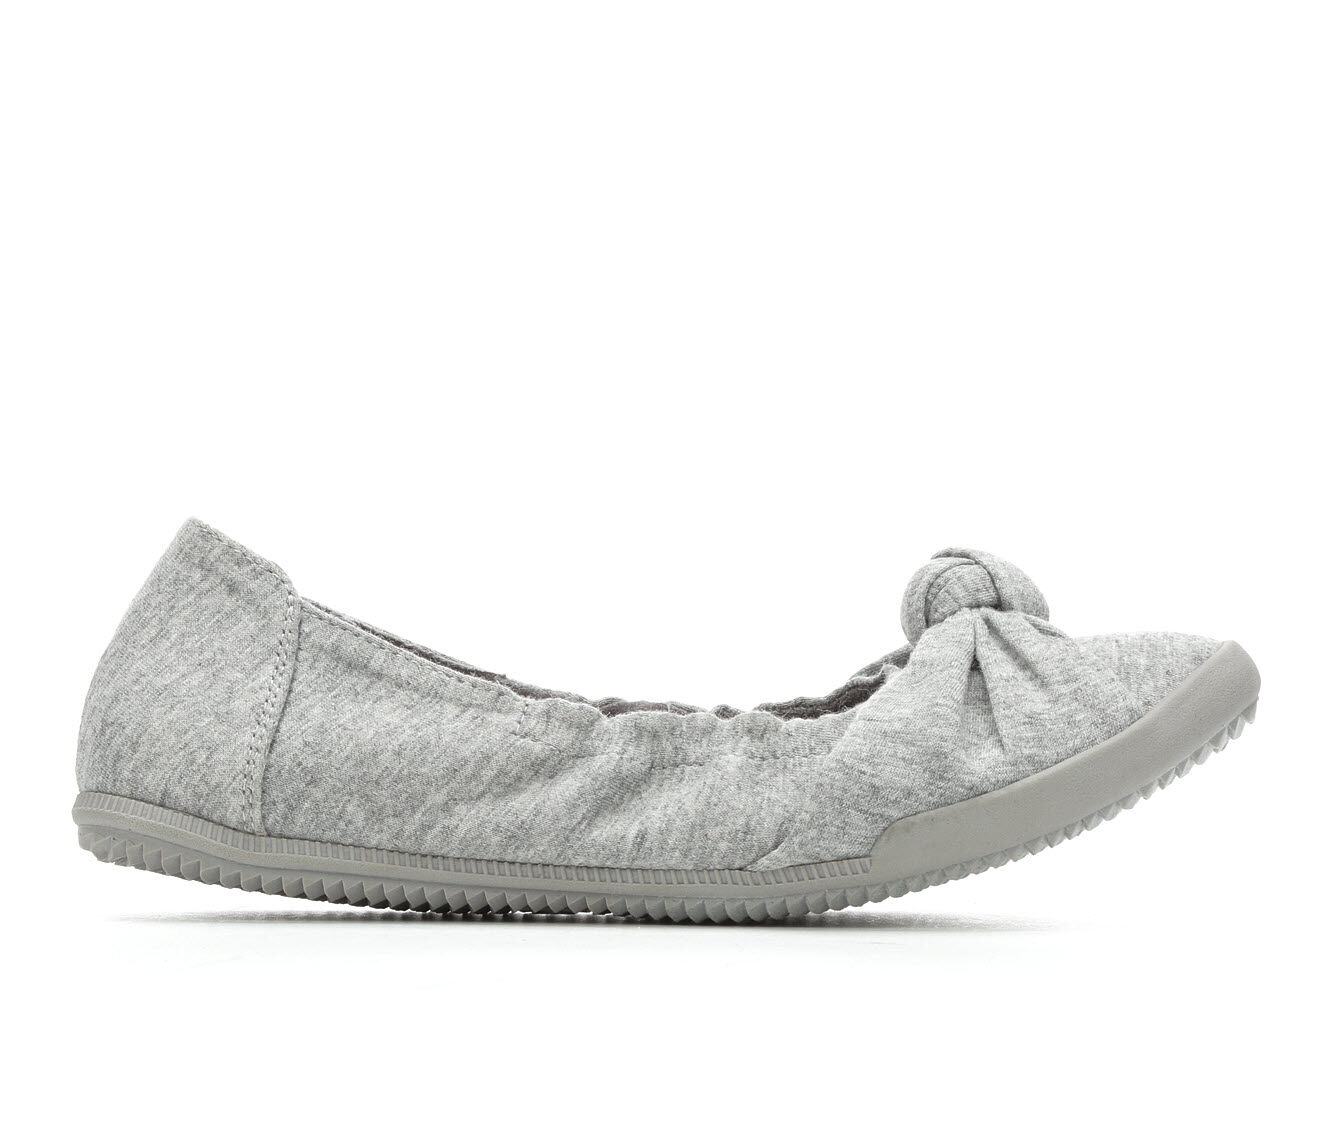 Women's Rocket Dog Steff Sneakers Light Grey